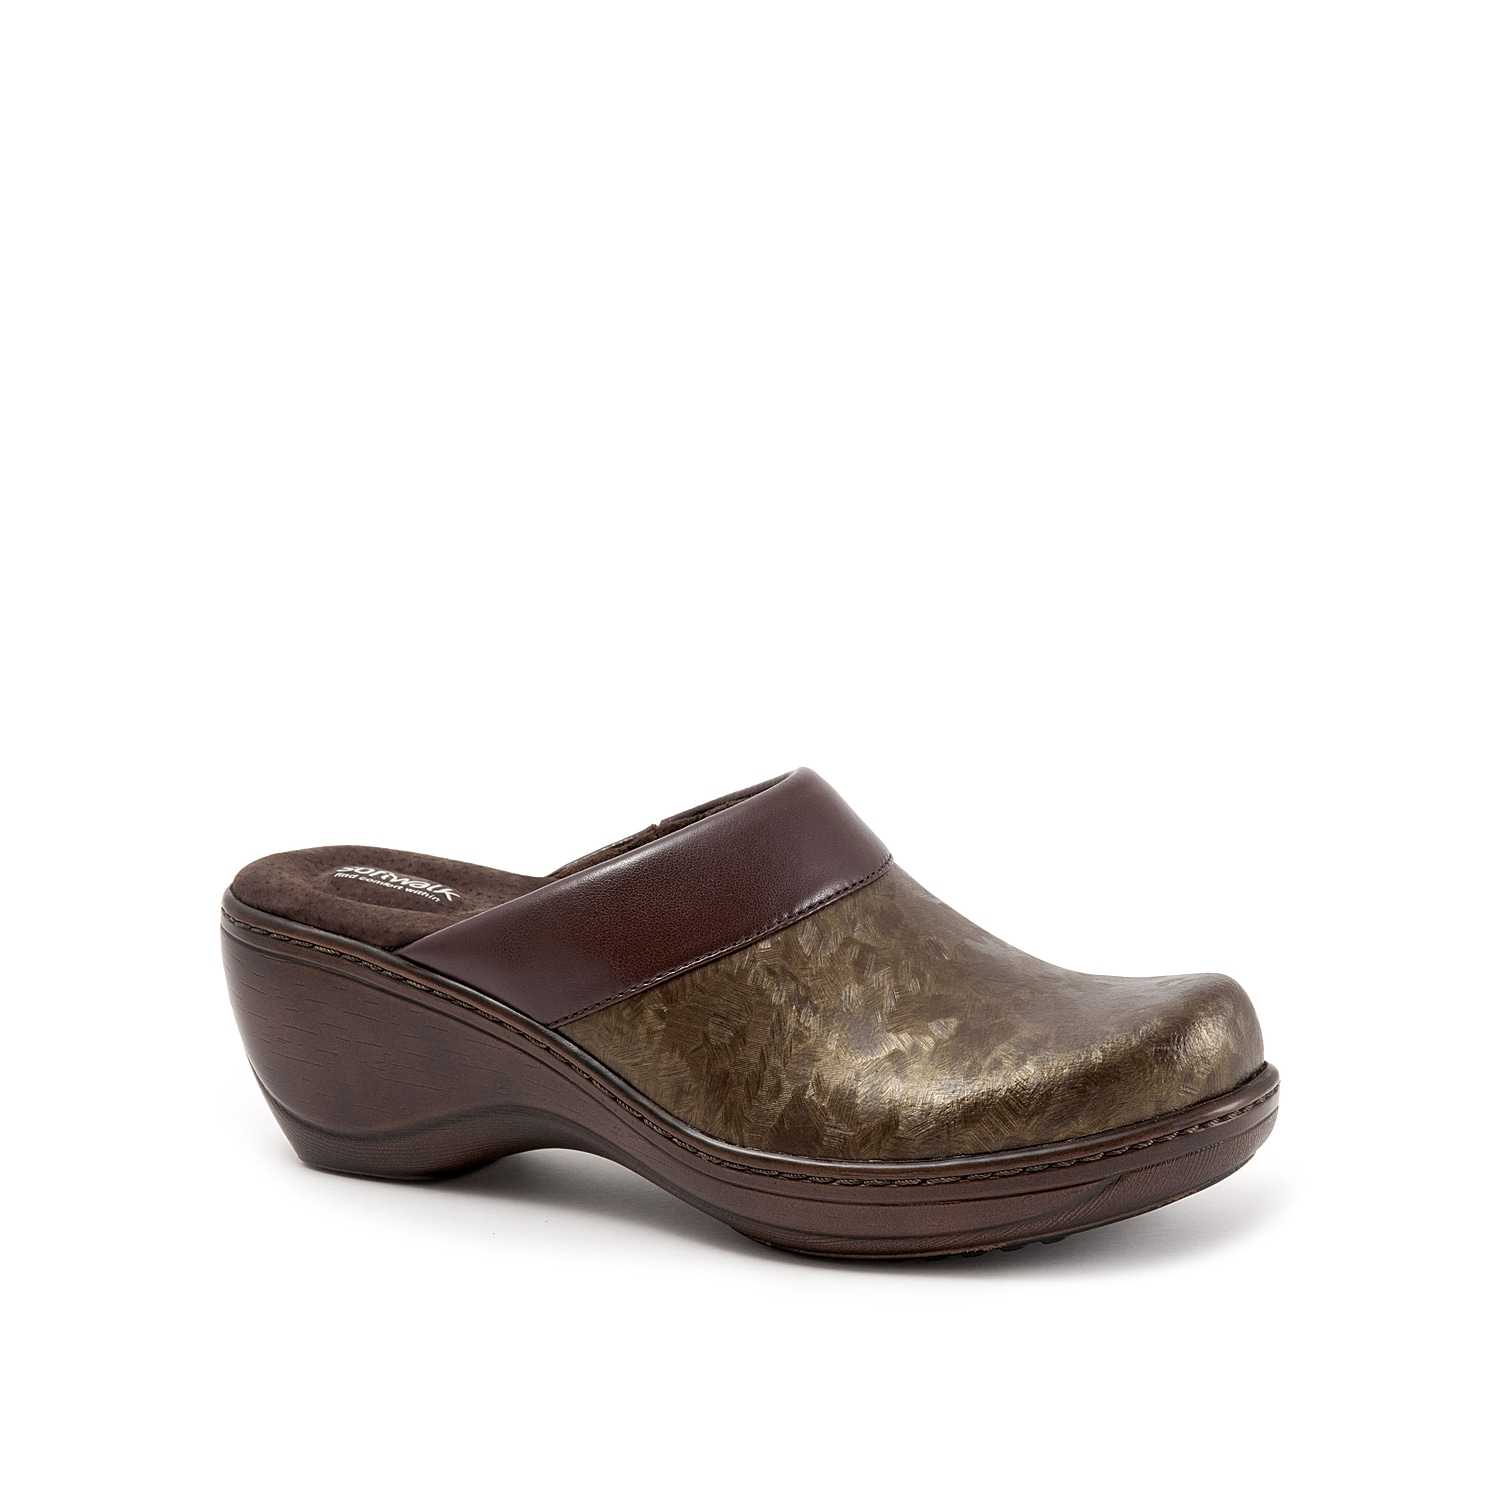 The Softwalk Murietta clog offers distinctive appeal. This wedge features antimicrobial lining for odor-free comfort and rubber gripping plates on the sole for superior traction.